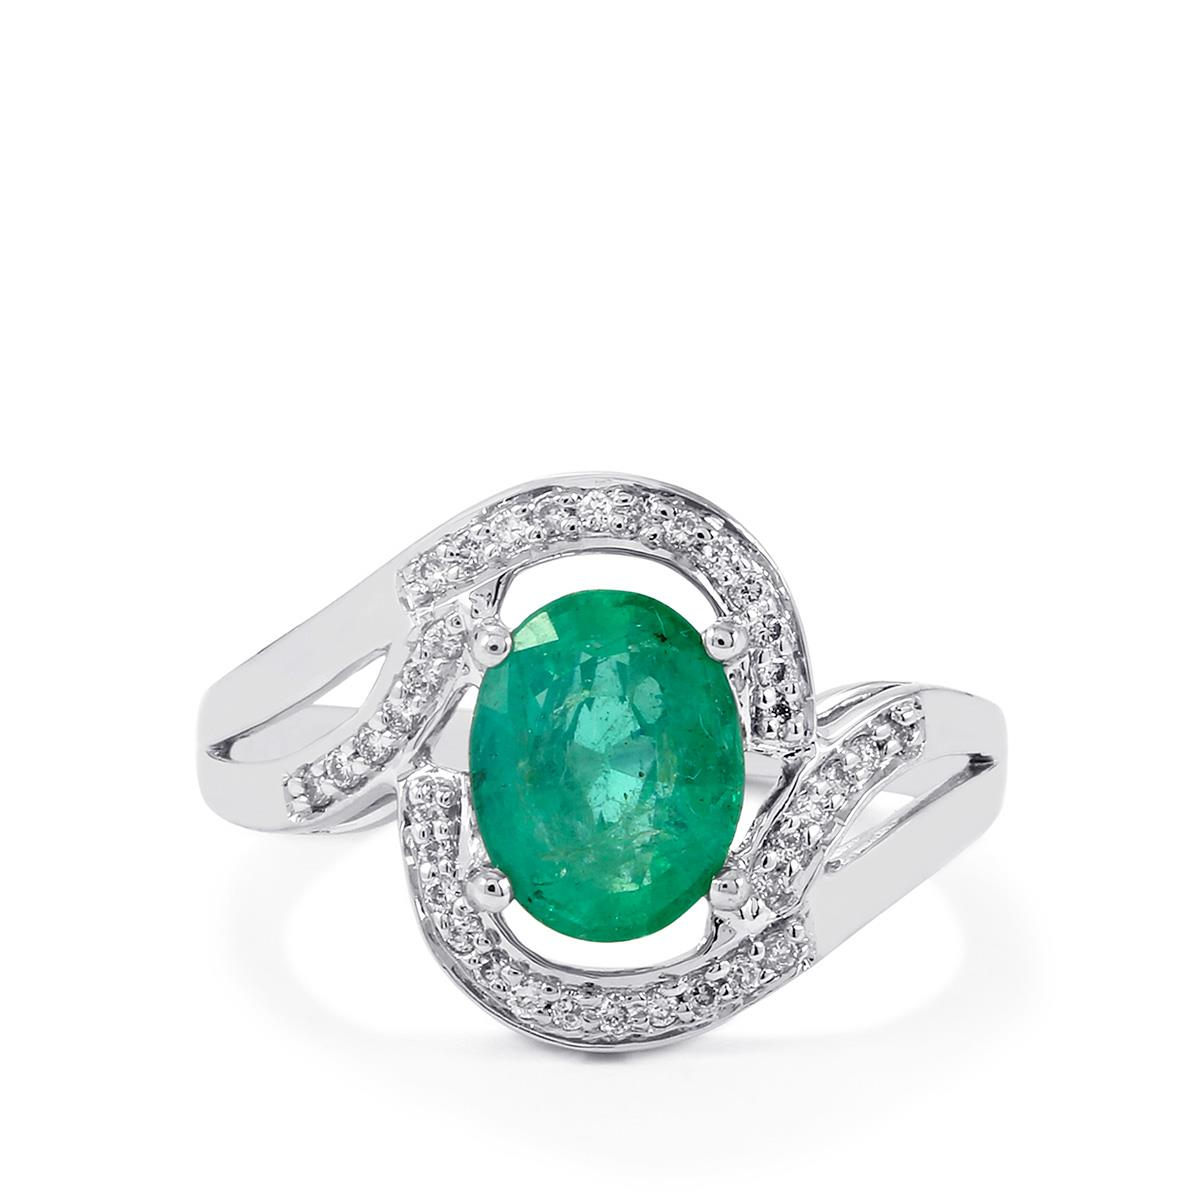 Zambian Emerald Ring With Diamond In 18k White Gold 1